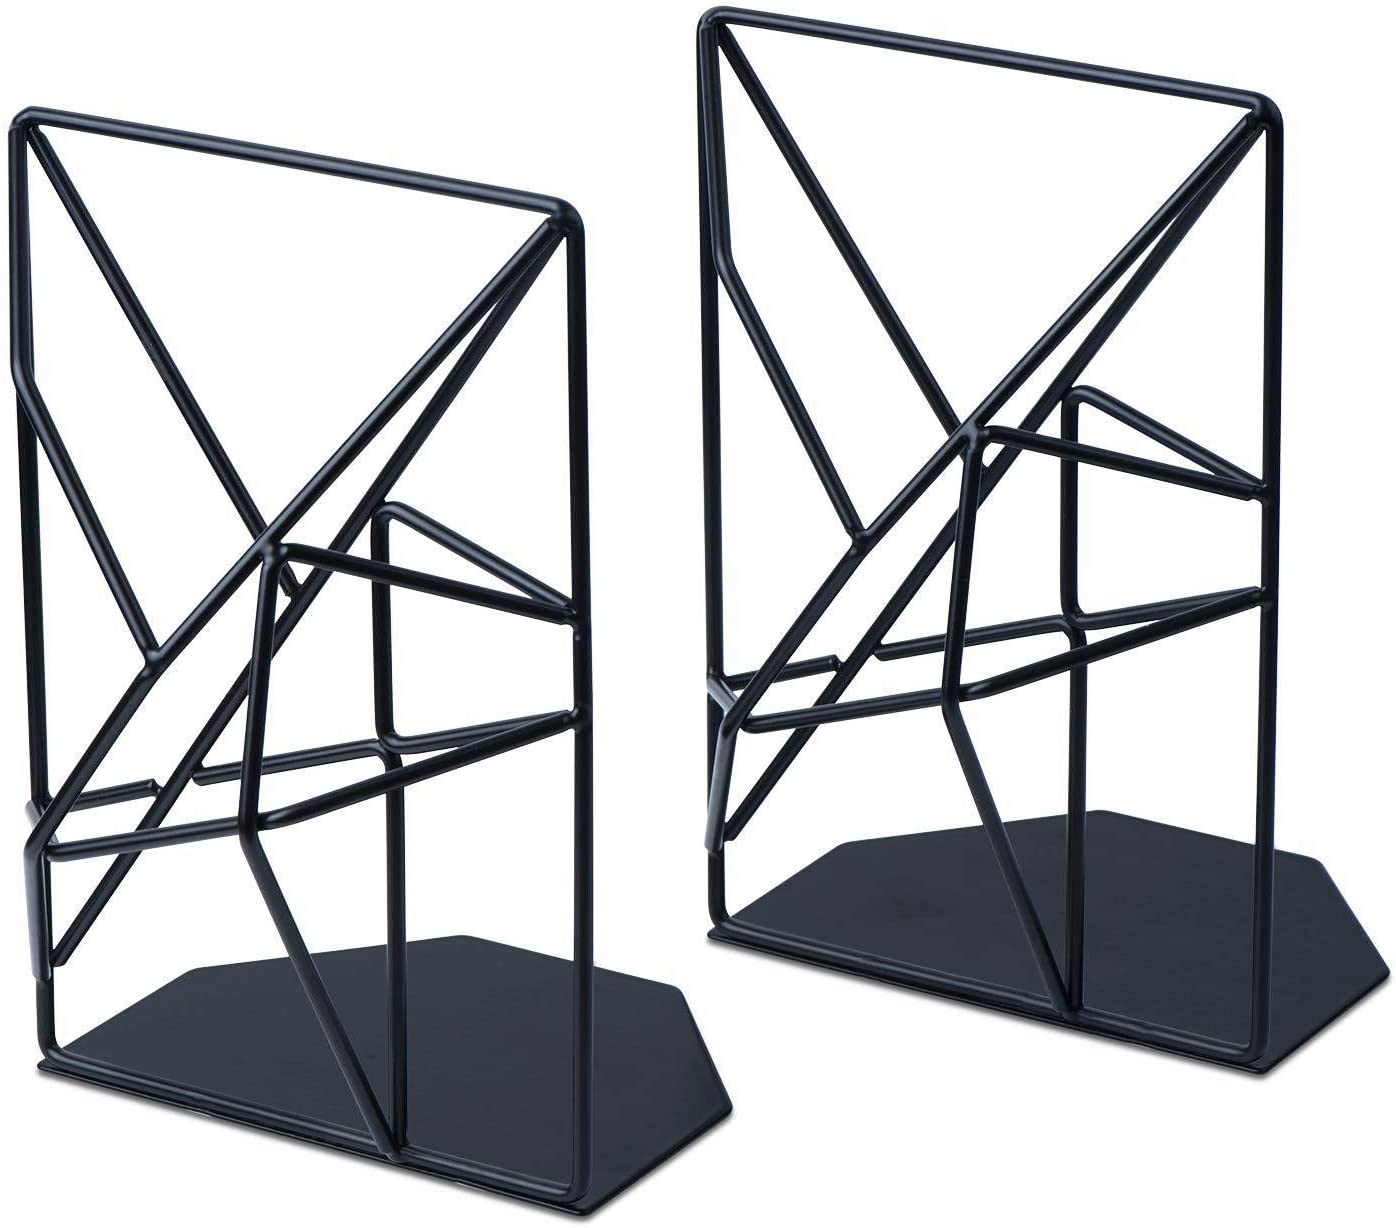 Lucy Day 2 Pair Book Stand BookshelfBook Holder Book by Book Stand Book End Book Thickened Two Pieces